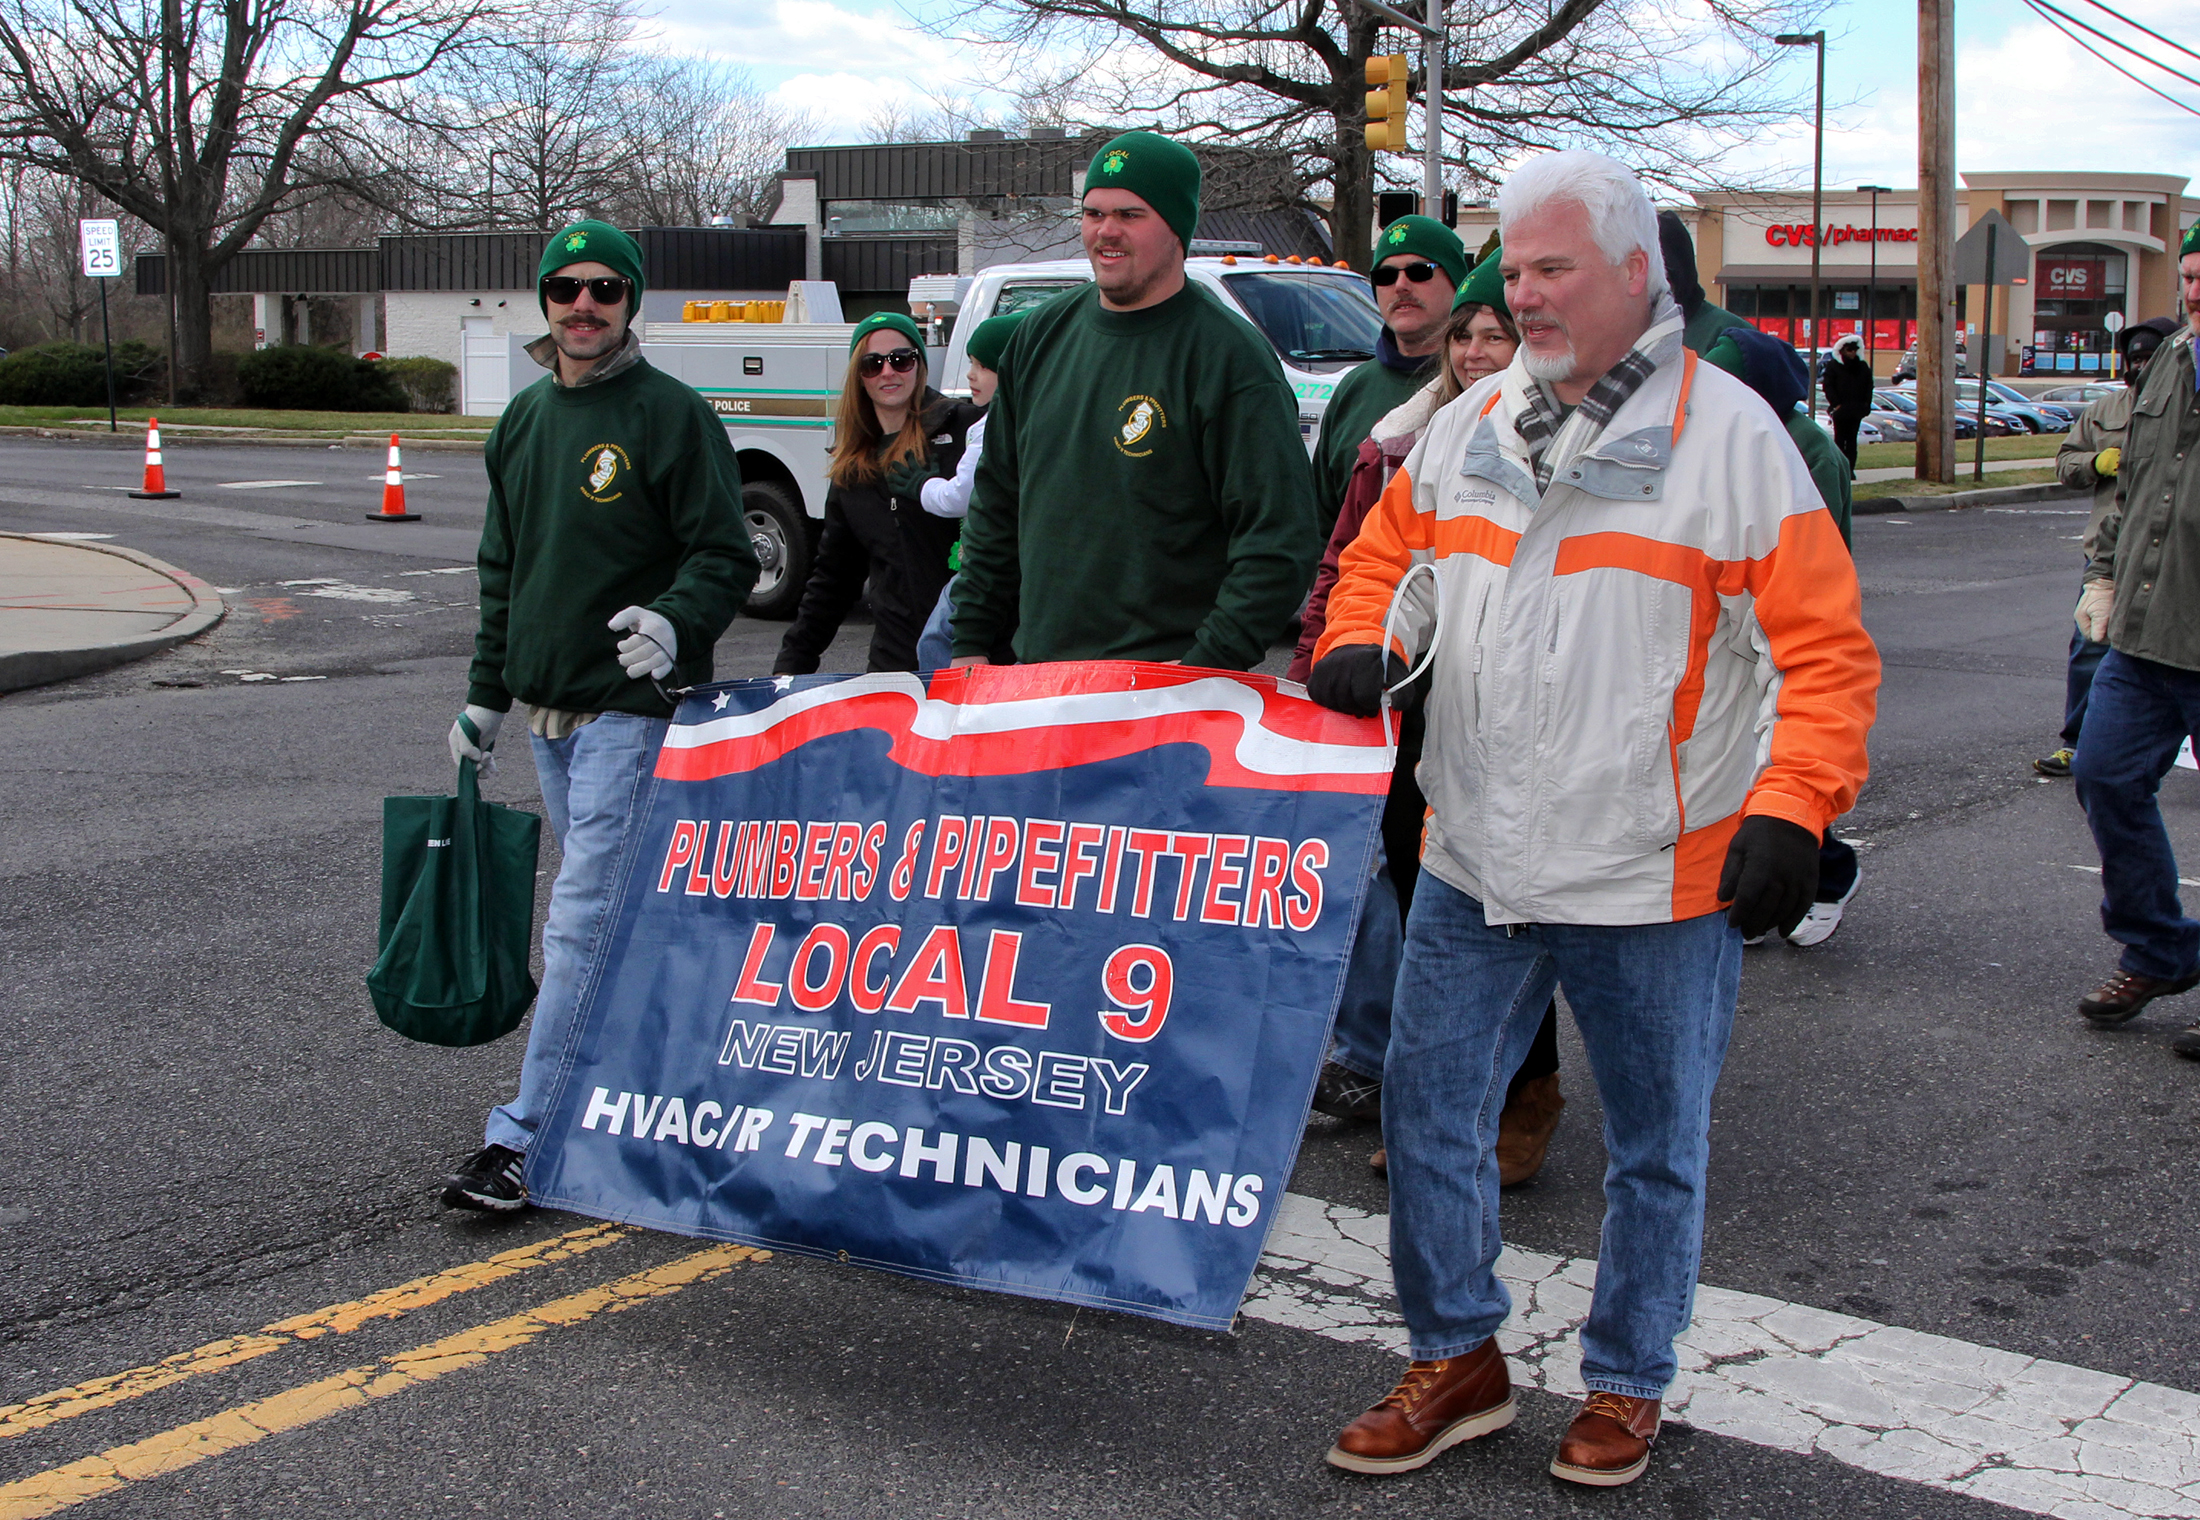 banner forLocal 9 Plumbers and Pipefitters at the 2017 St Patrick's day parade